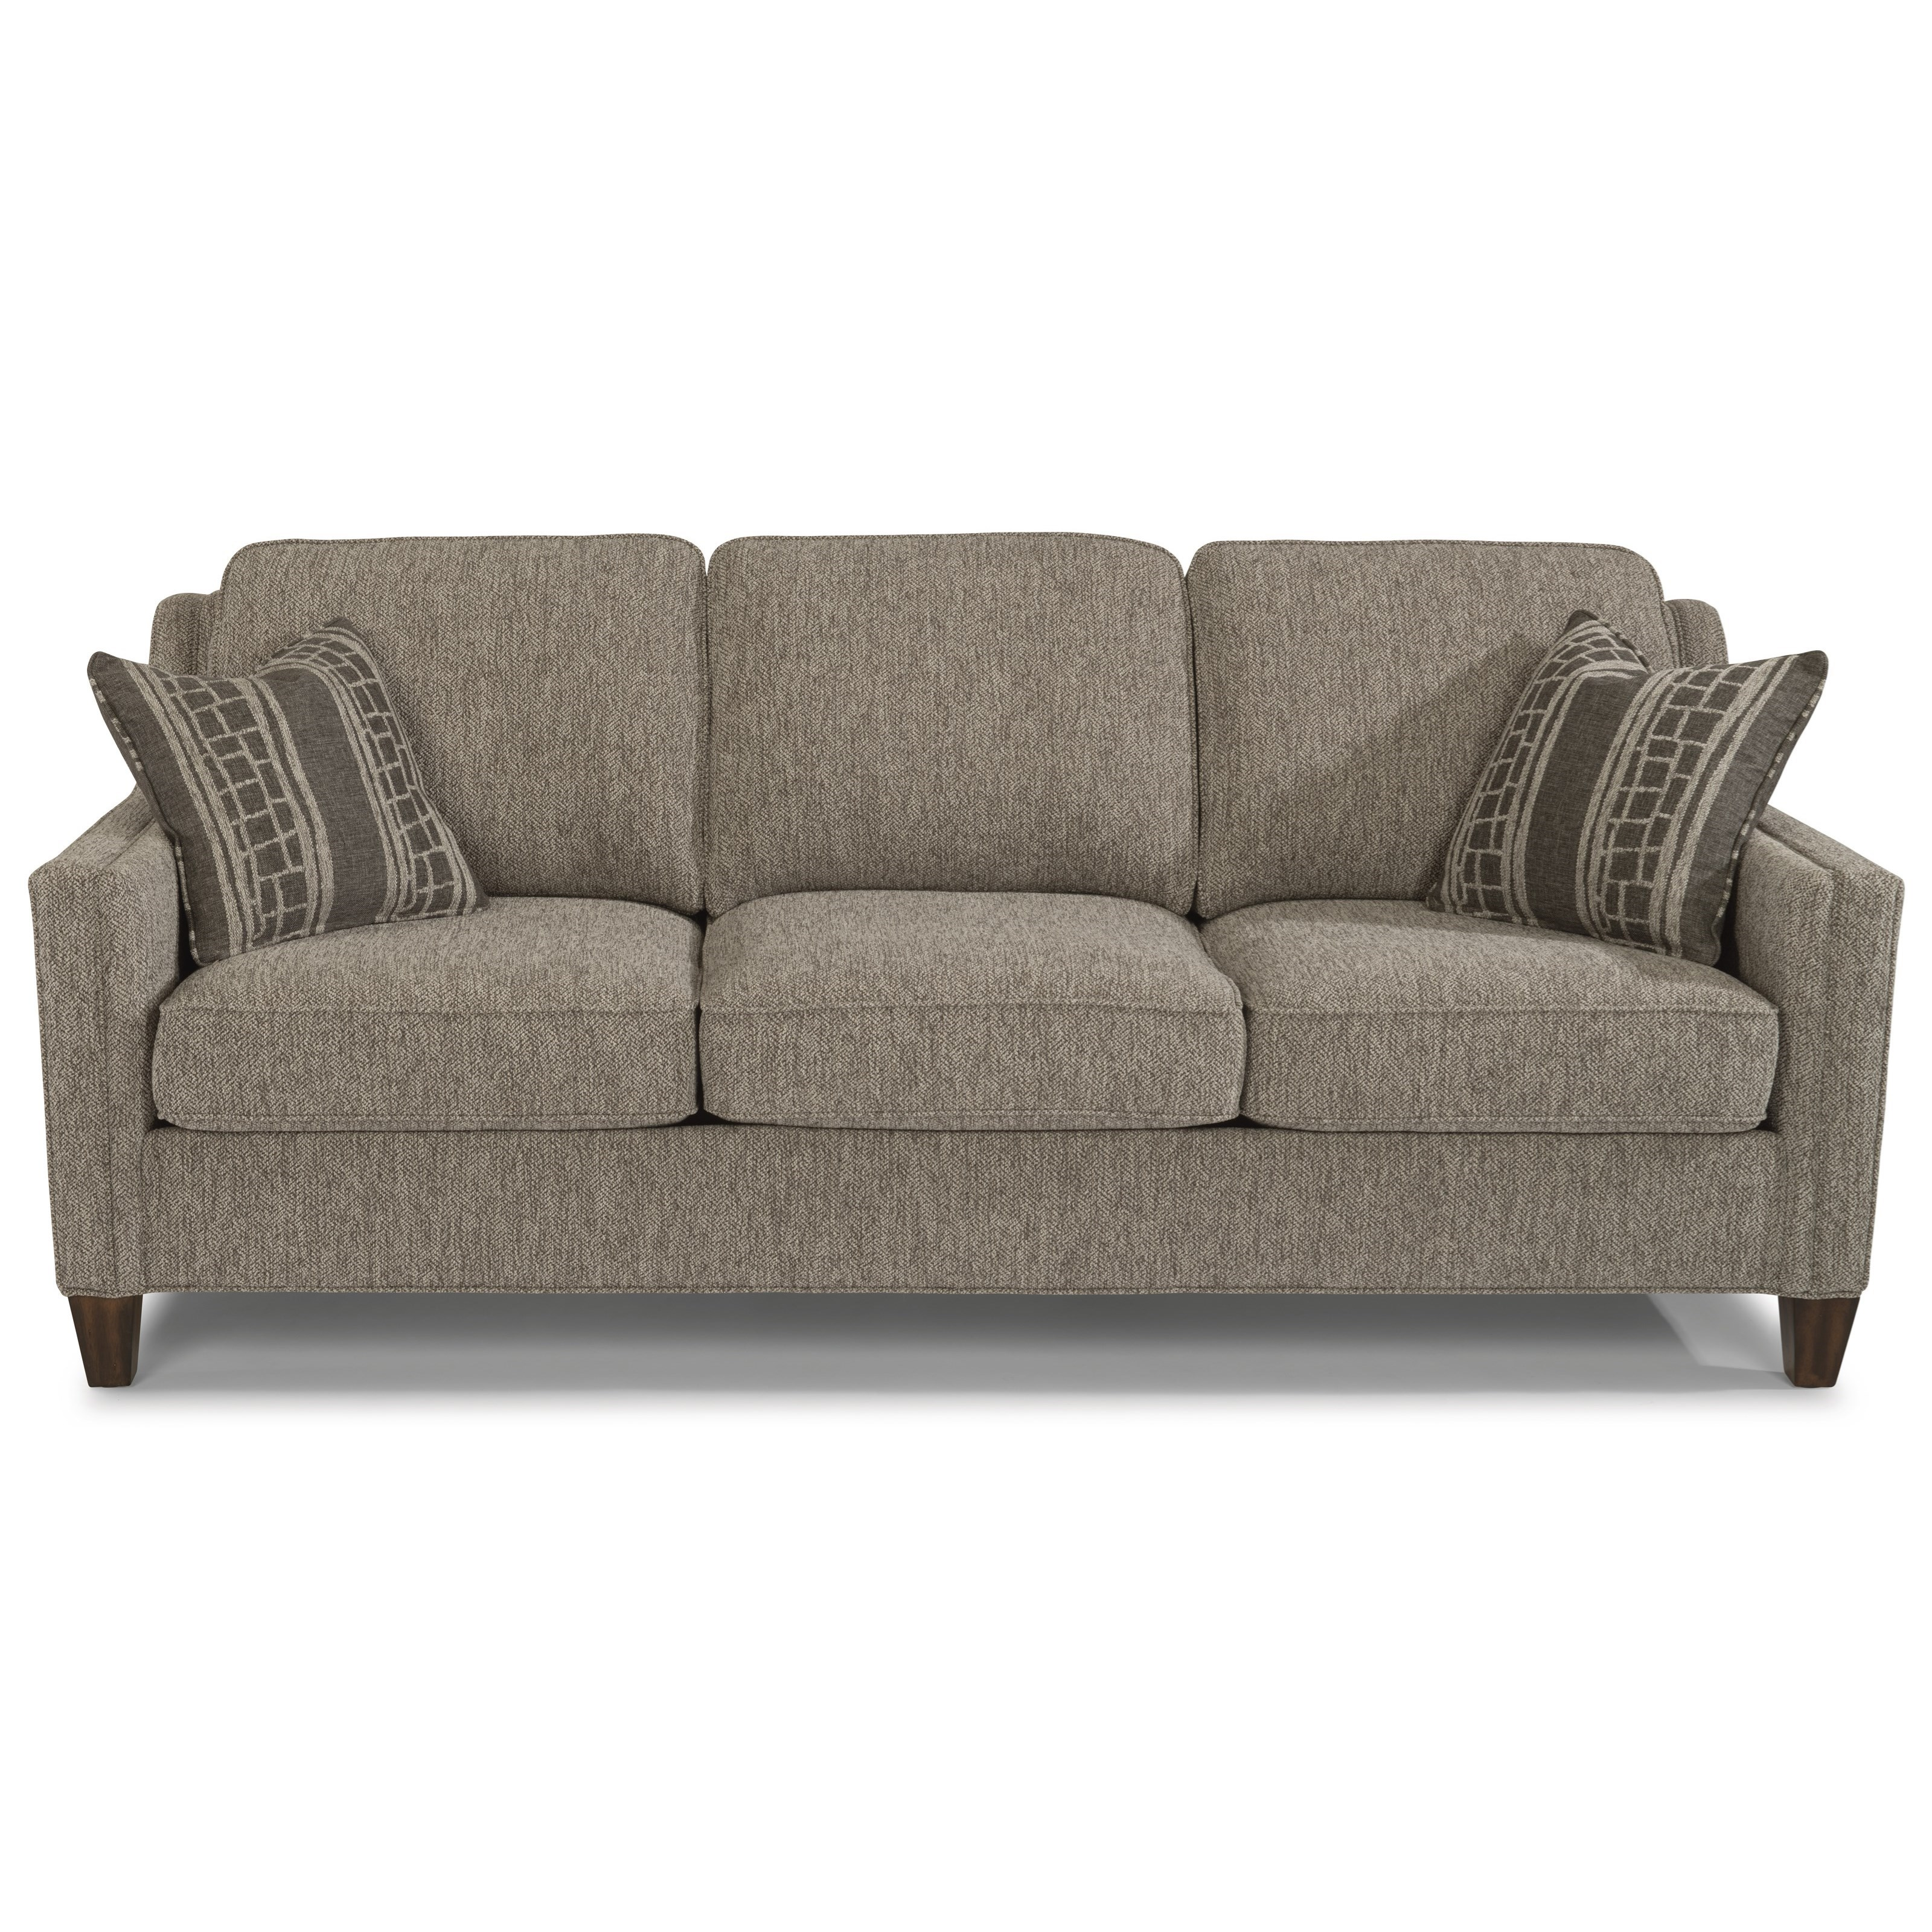 Sofa Modern Finley Contemporary Sofa With Track Arms By Flexsteel At Dunk Bright Furniture